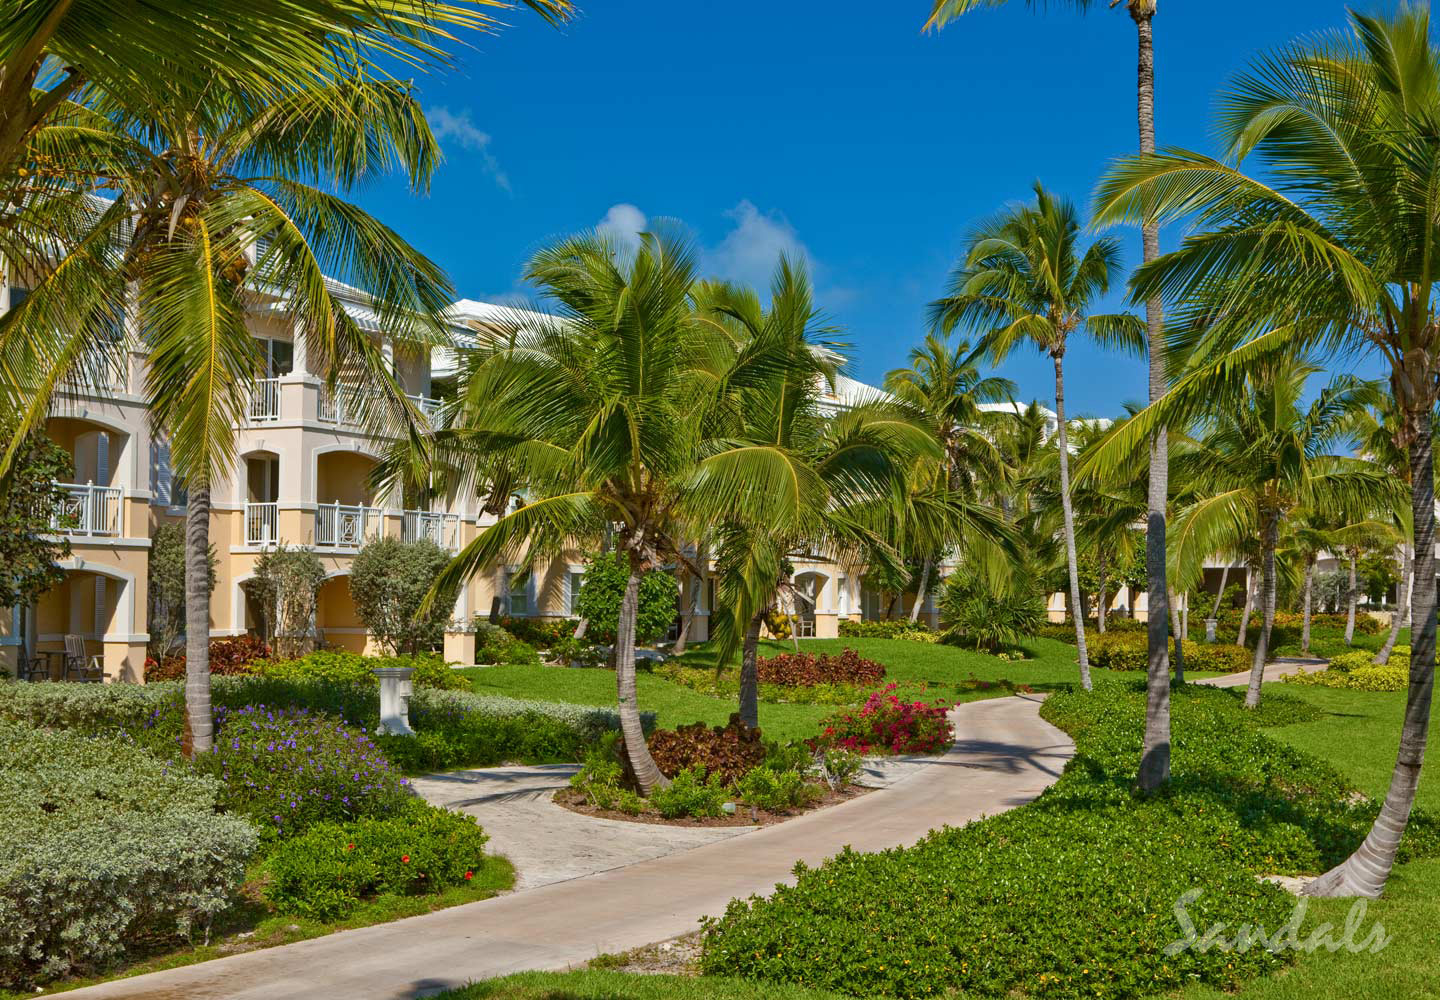 Travel Agency All-Inclusive Resort Sandals Emerald Bay 076